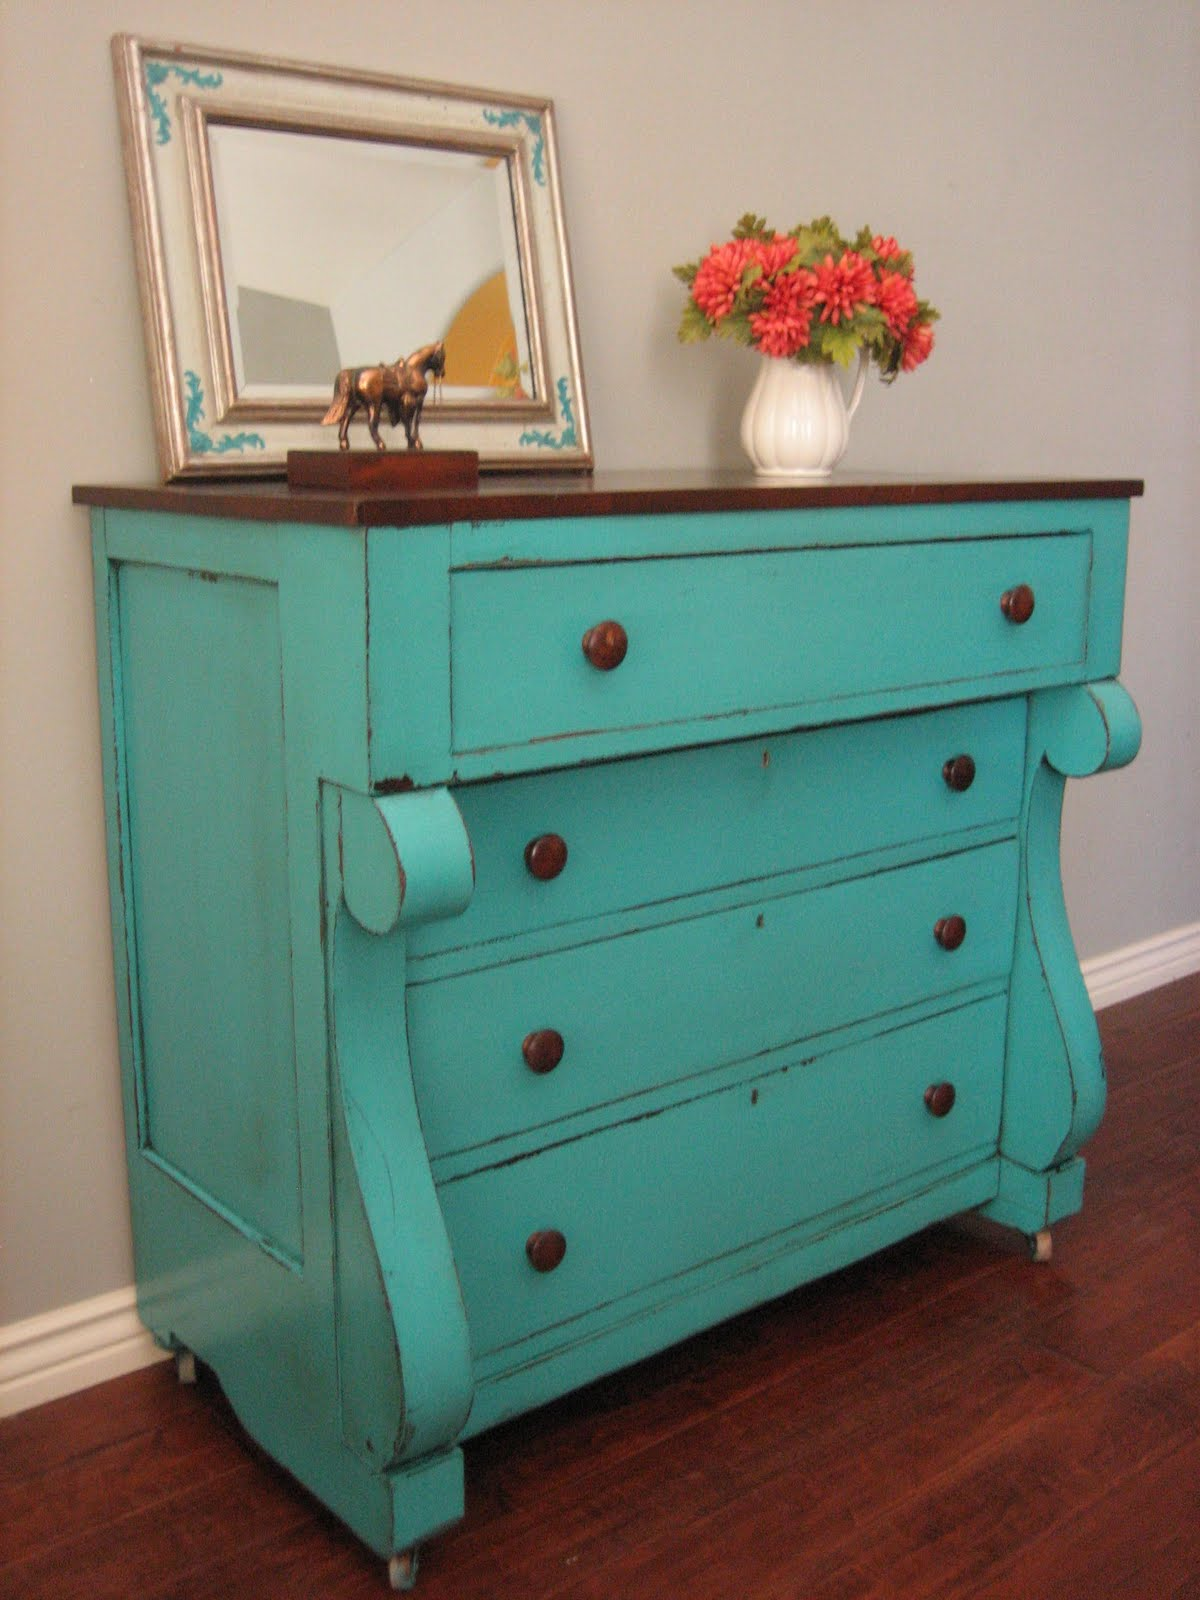 European paint finishes teal chest of drawers Images of painted furniture